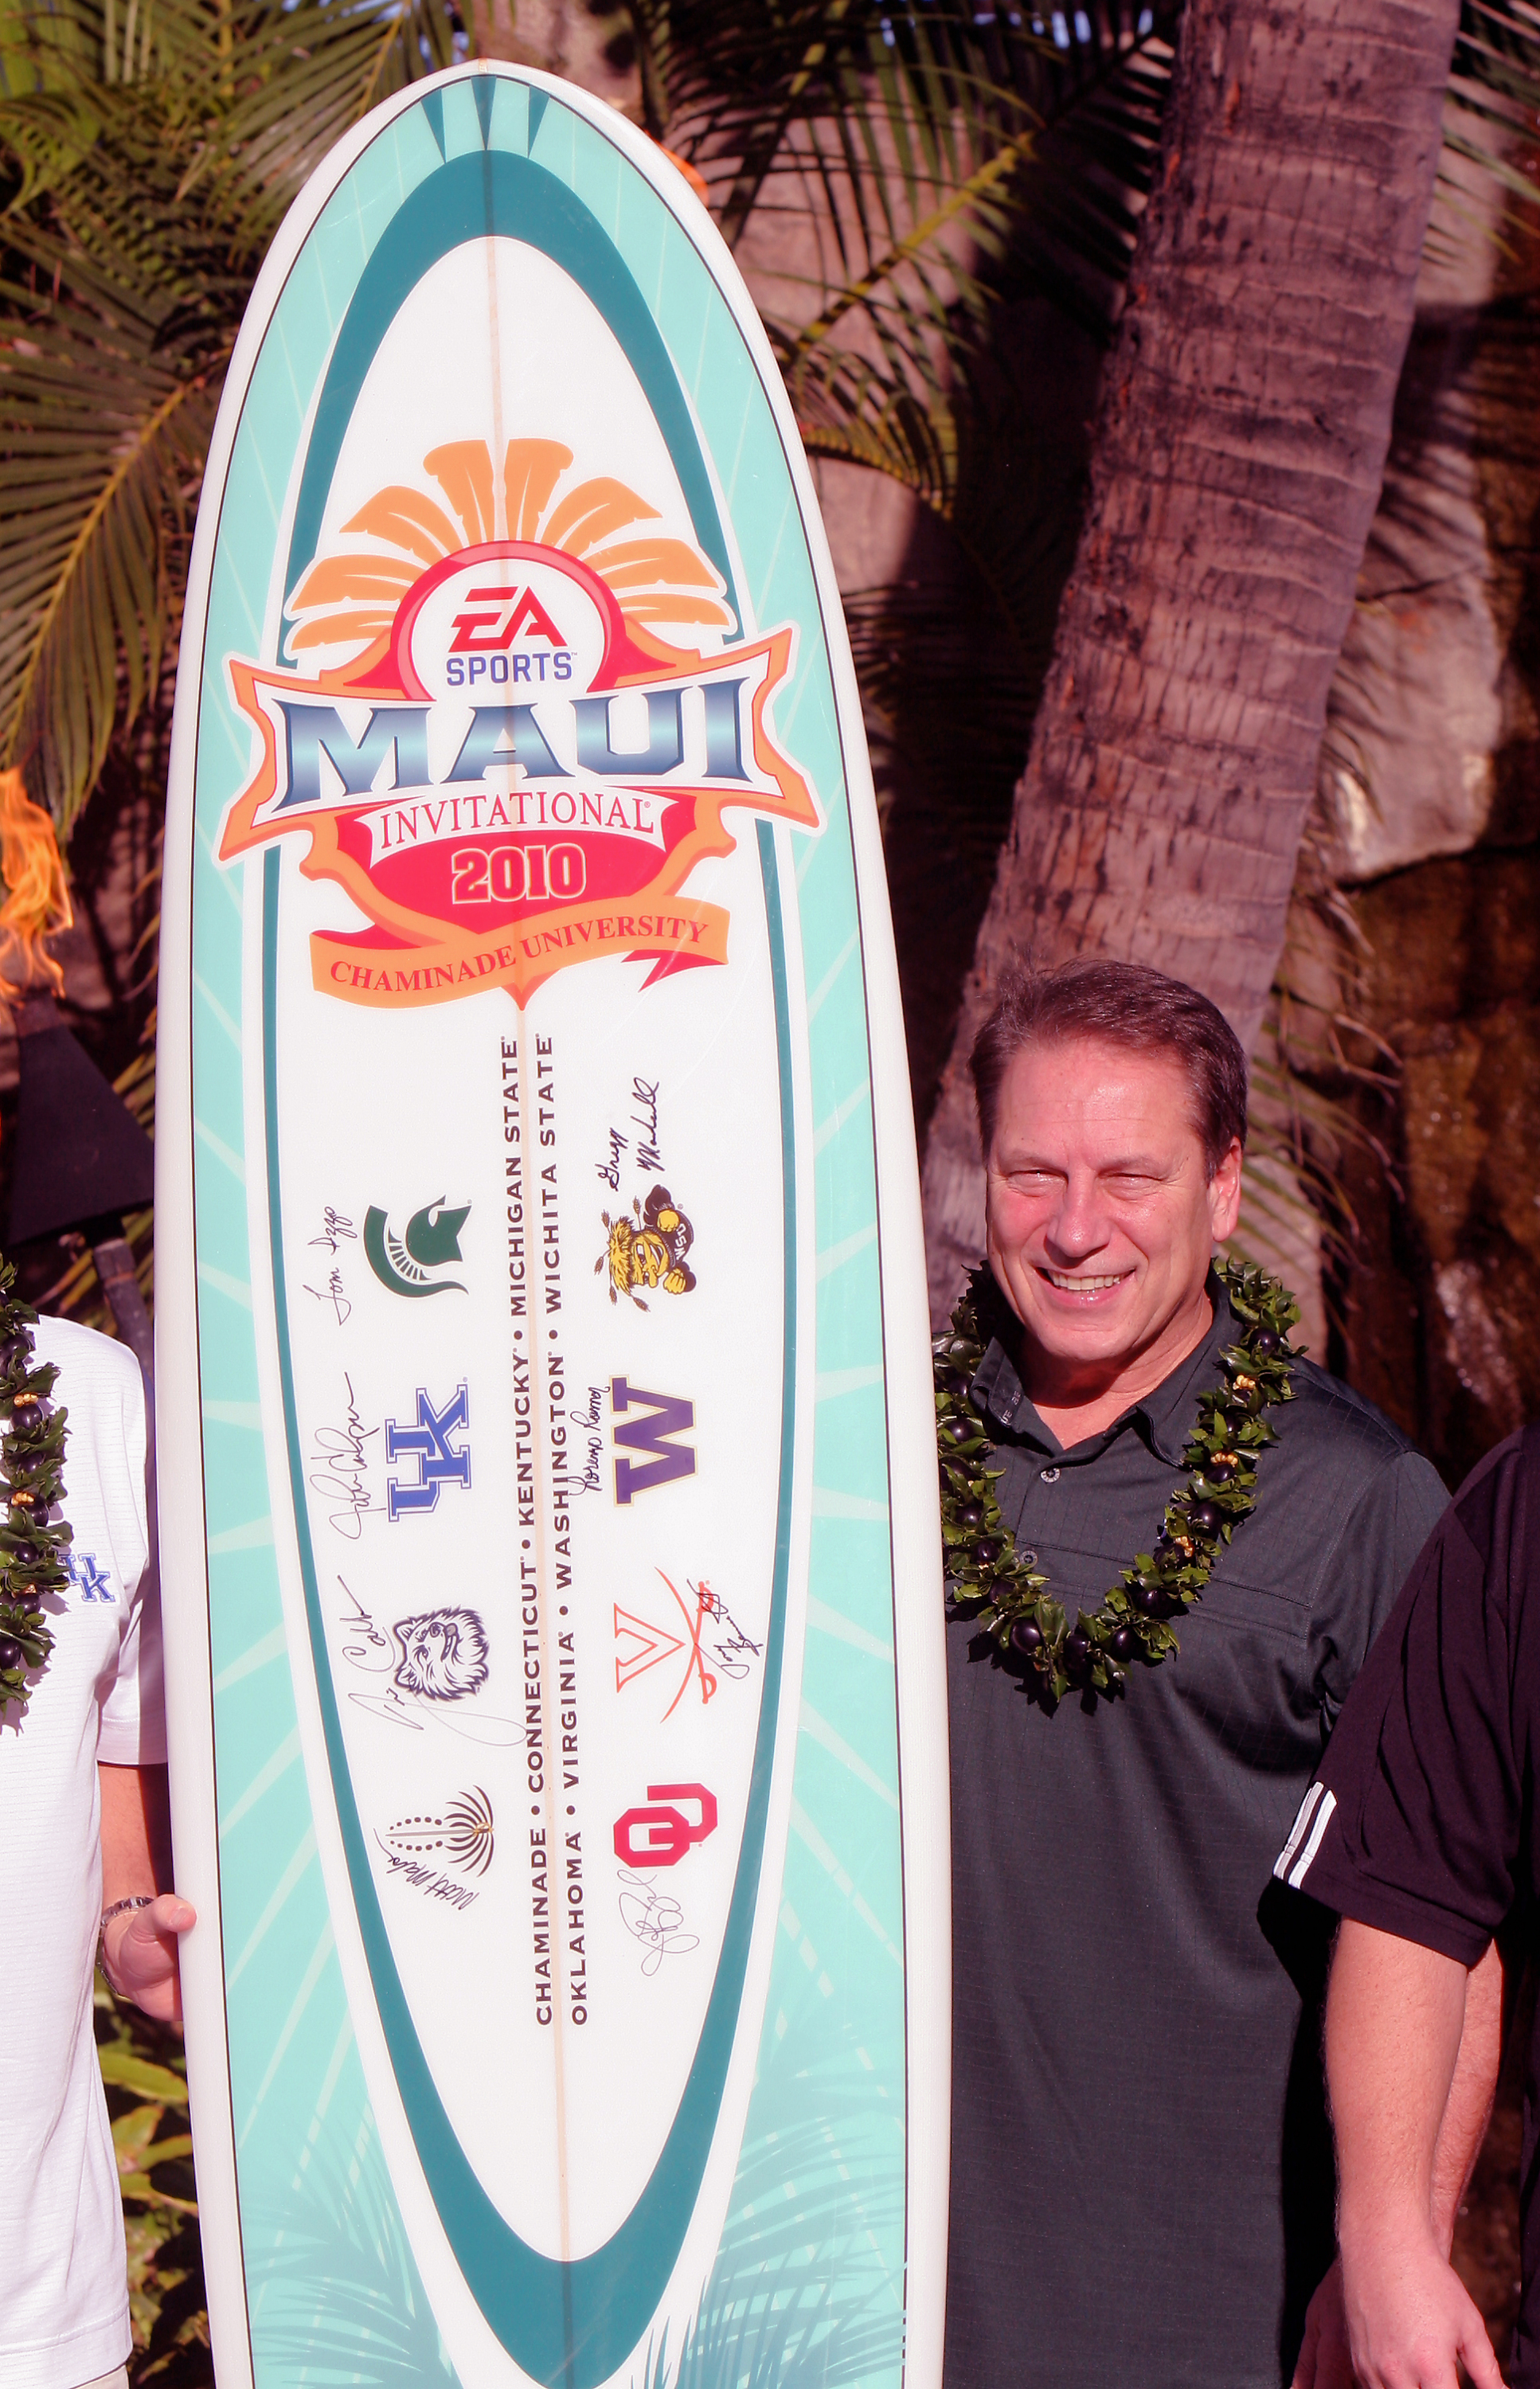 Tom Izzo leads MSU against Chaminade in the Maui Invitational opener.